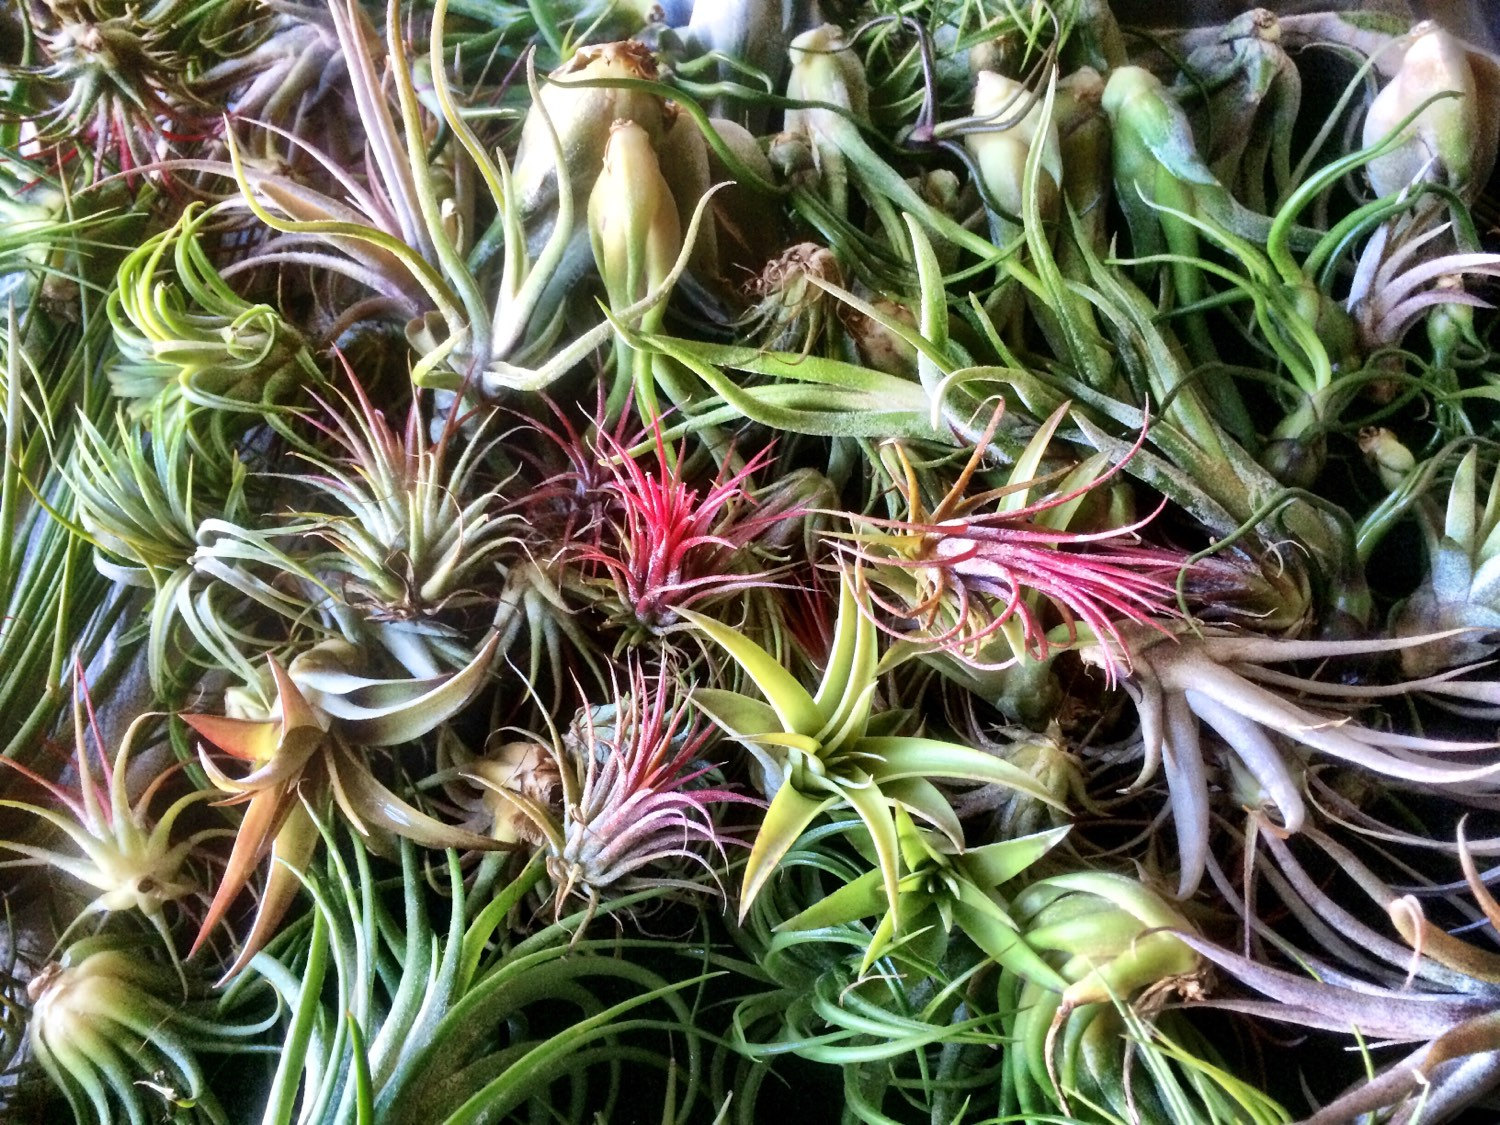 Air plants from Etsy shop Greenwich Cottage